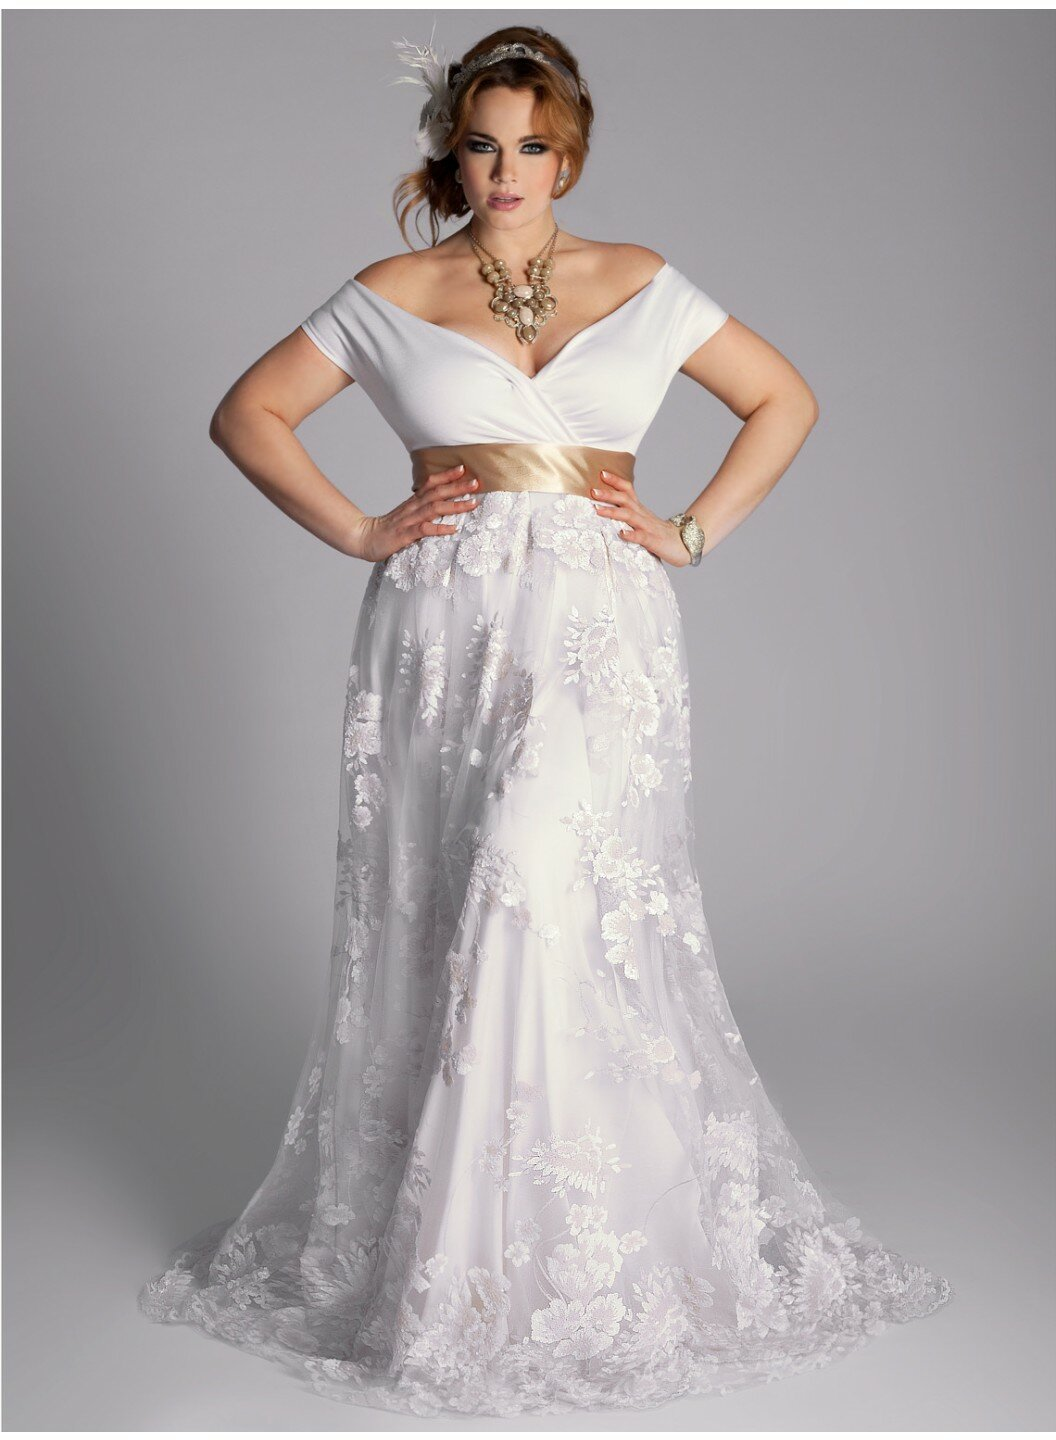 Retro Wedding Dresses Plus Size Photo   1